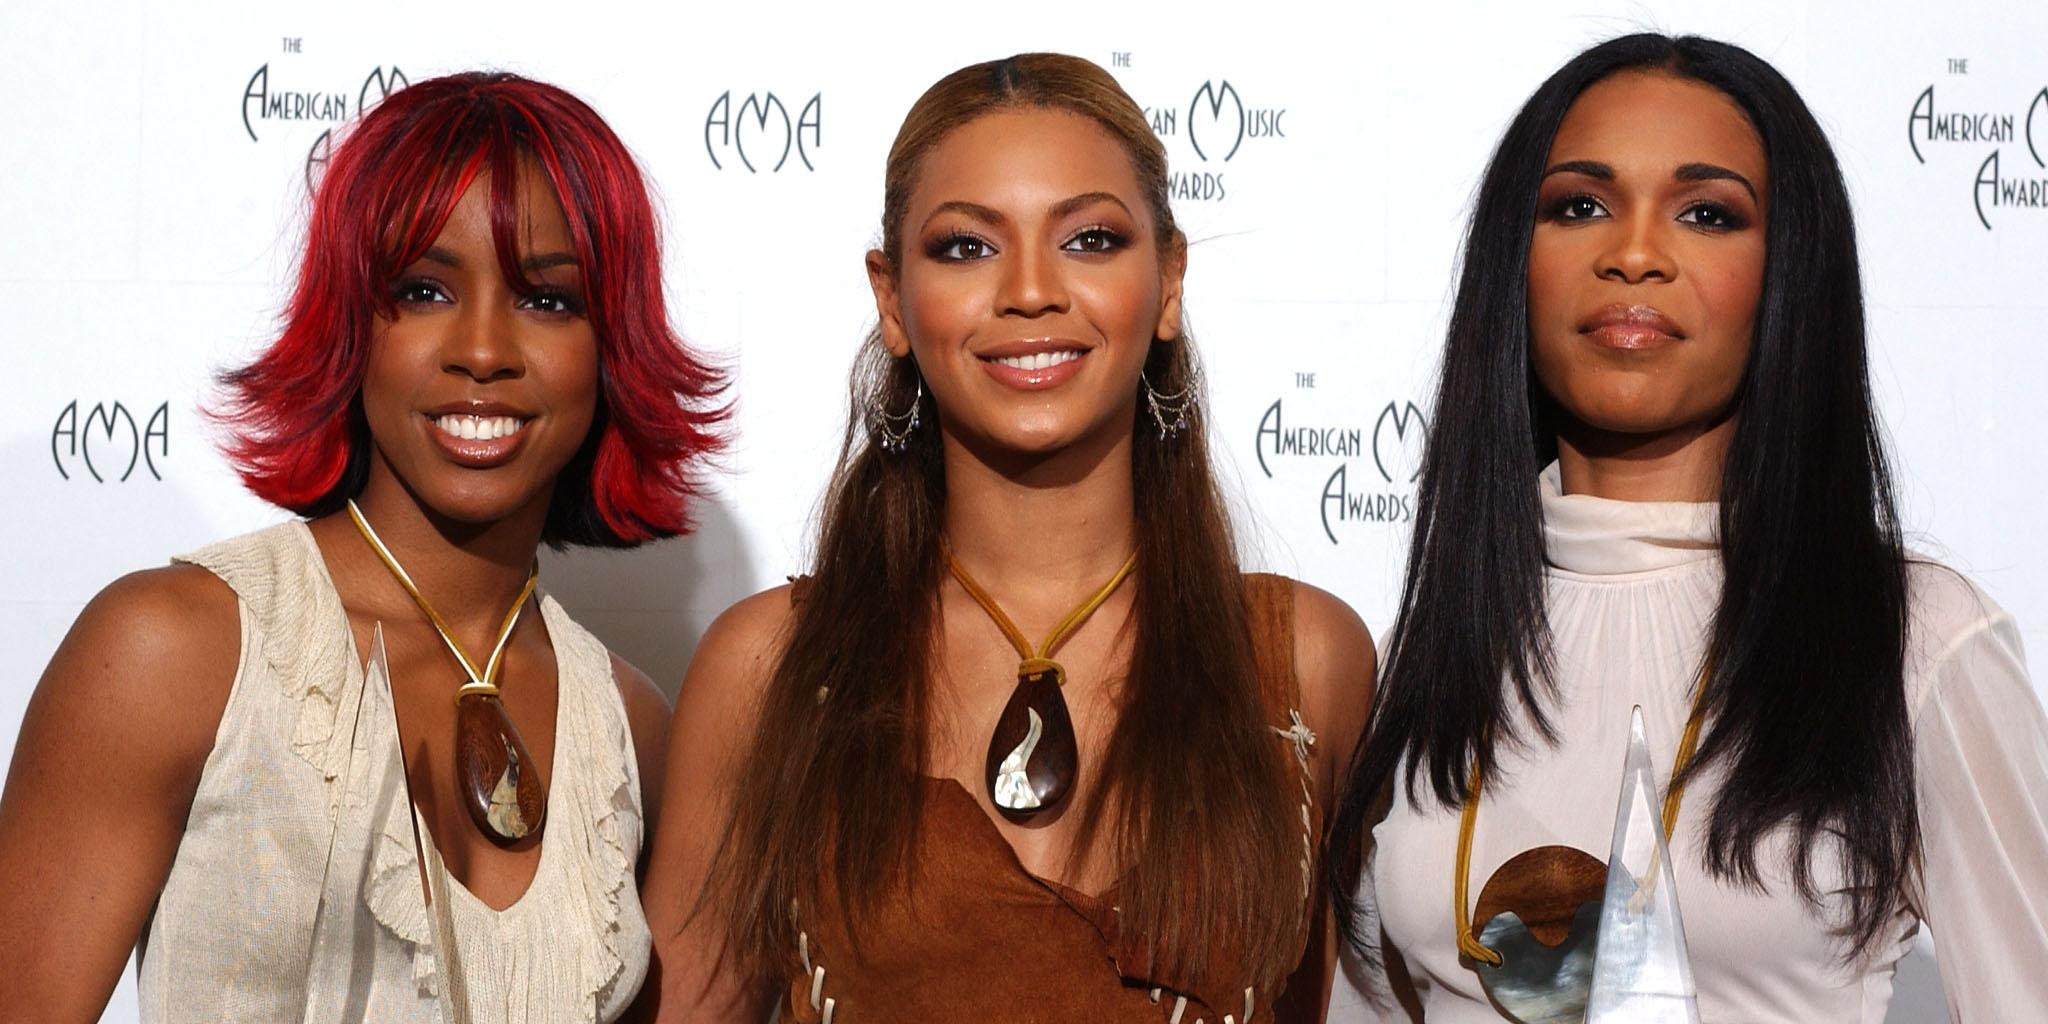 Beyonce's Parents Accompanied Destiny's Child To The Bathroom And Didn't Let Them Out Of Sight As Teens Working With R. Kelly!